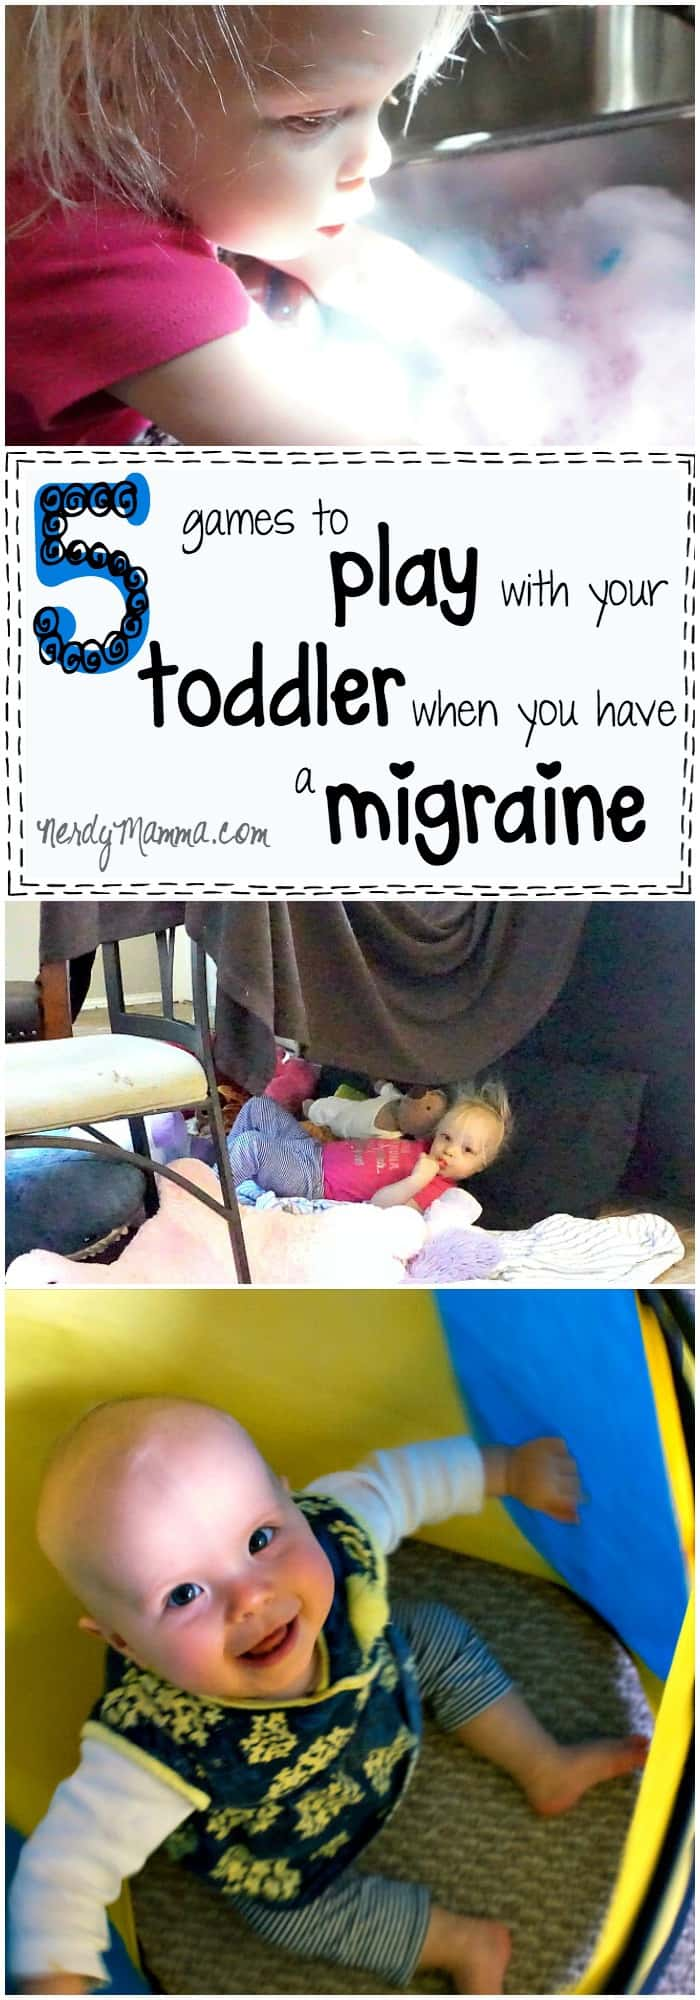 Play Your Card Right On Pinterest: 5 Games To Play With Your Toddler When You Have A Migraine